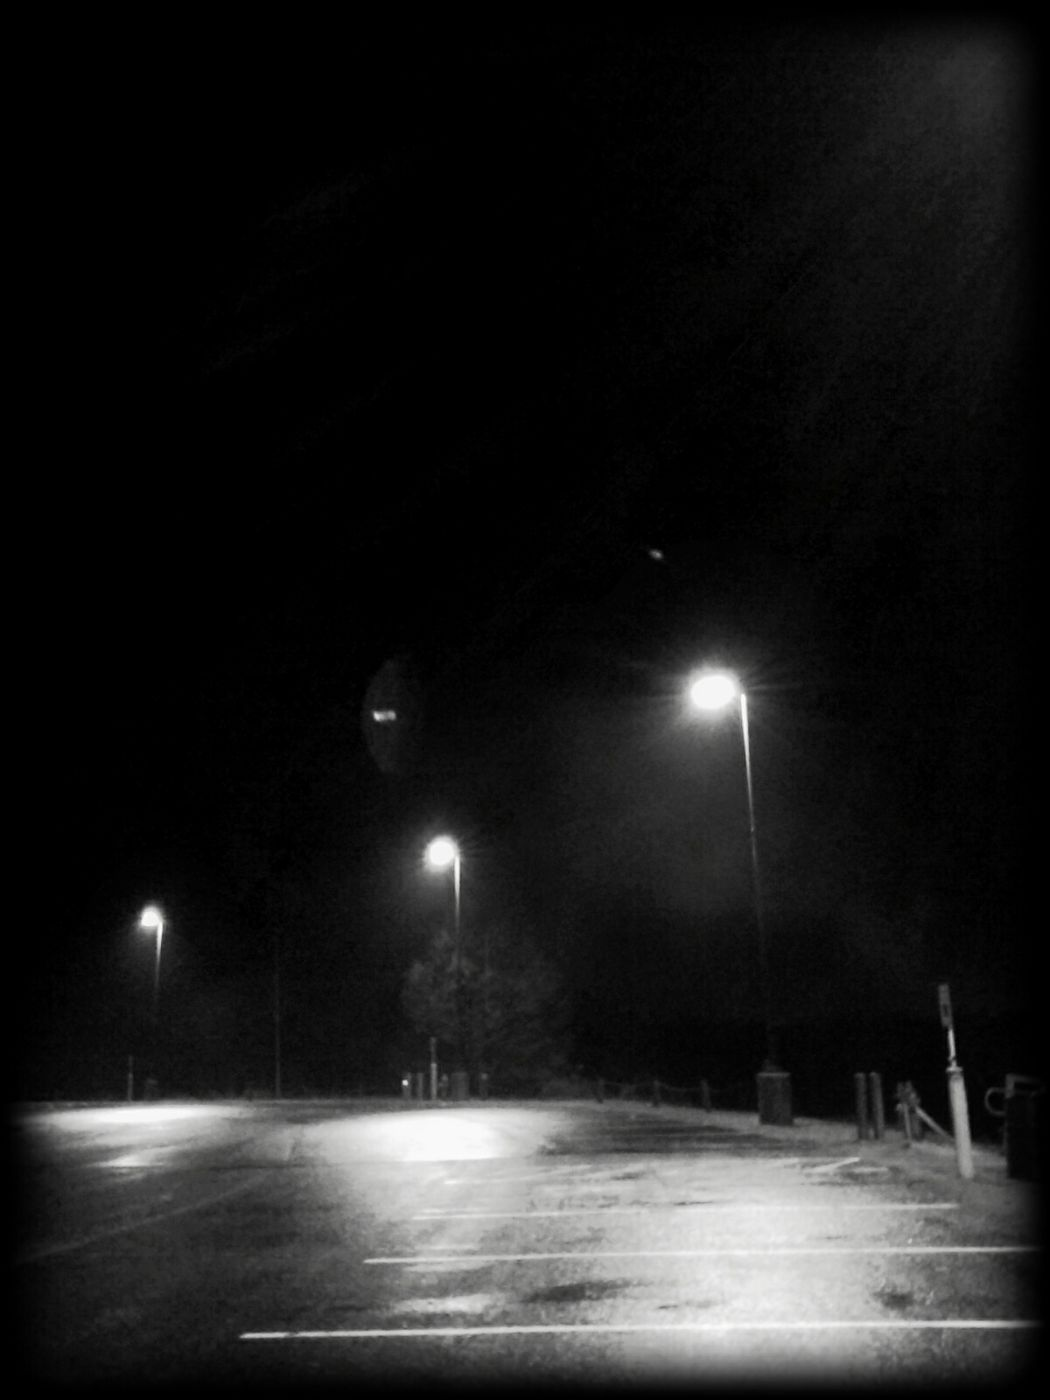 B&w Street Photography Parking Lot Misty Night Photography Local Senic Local Lakes Oklahoma